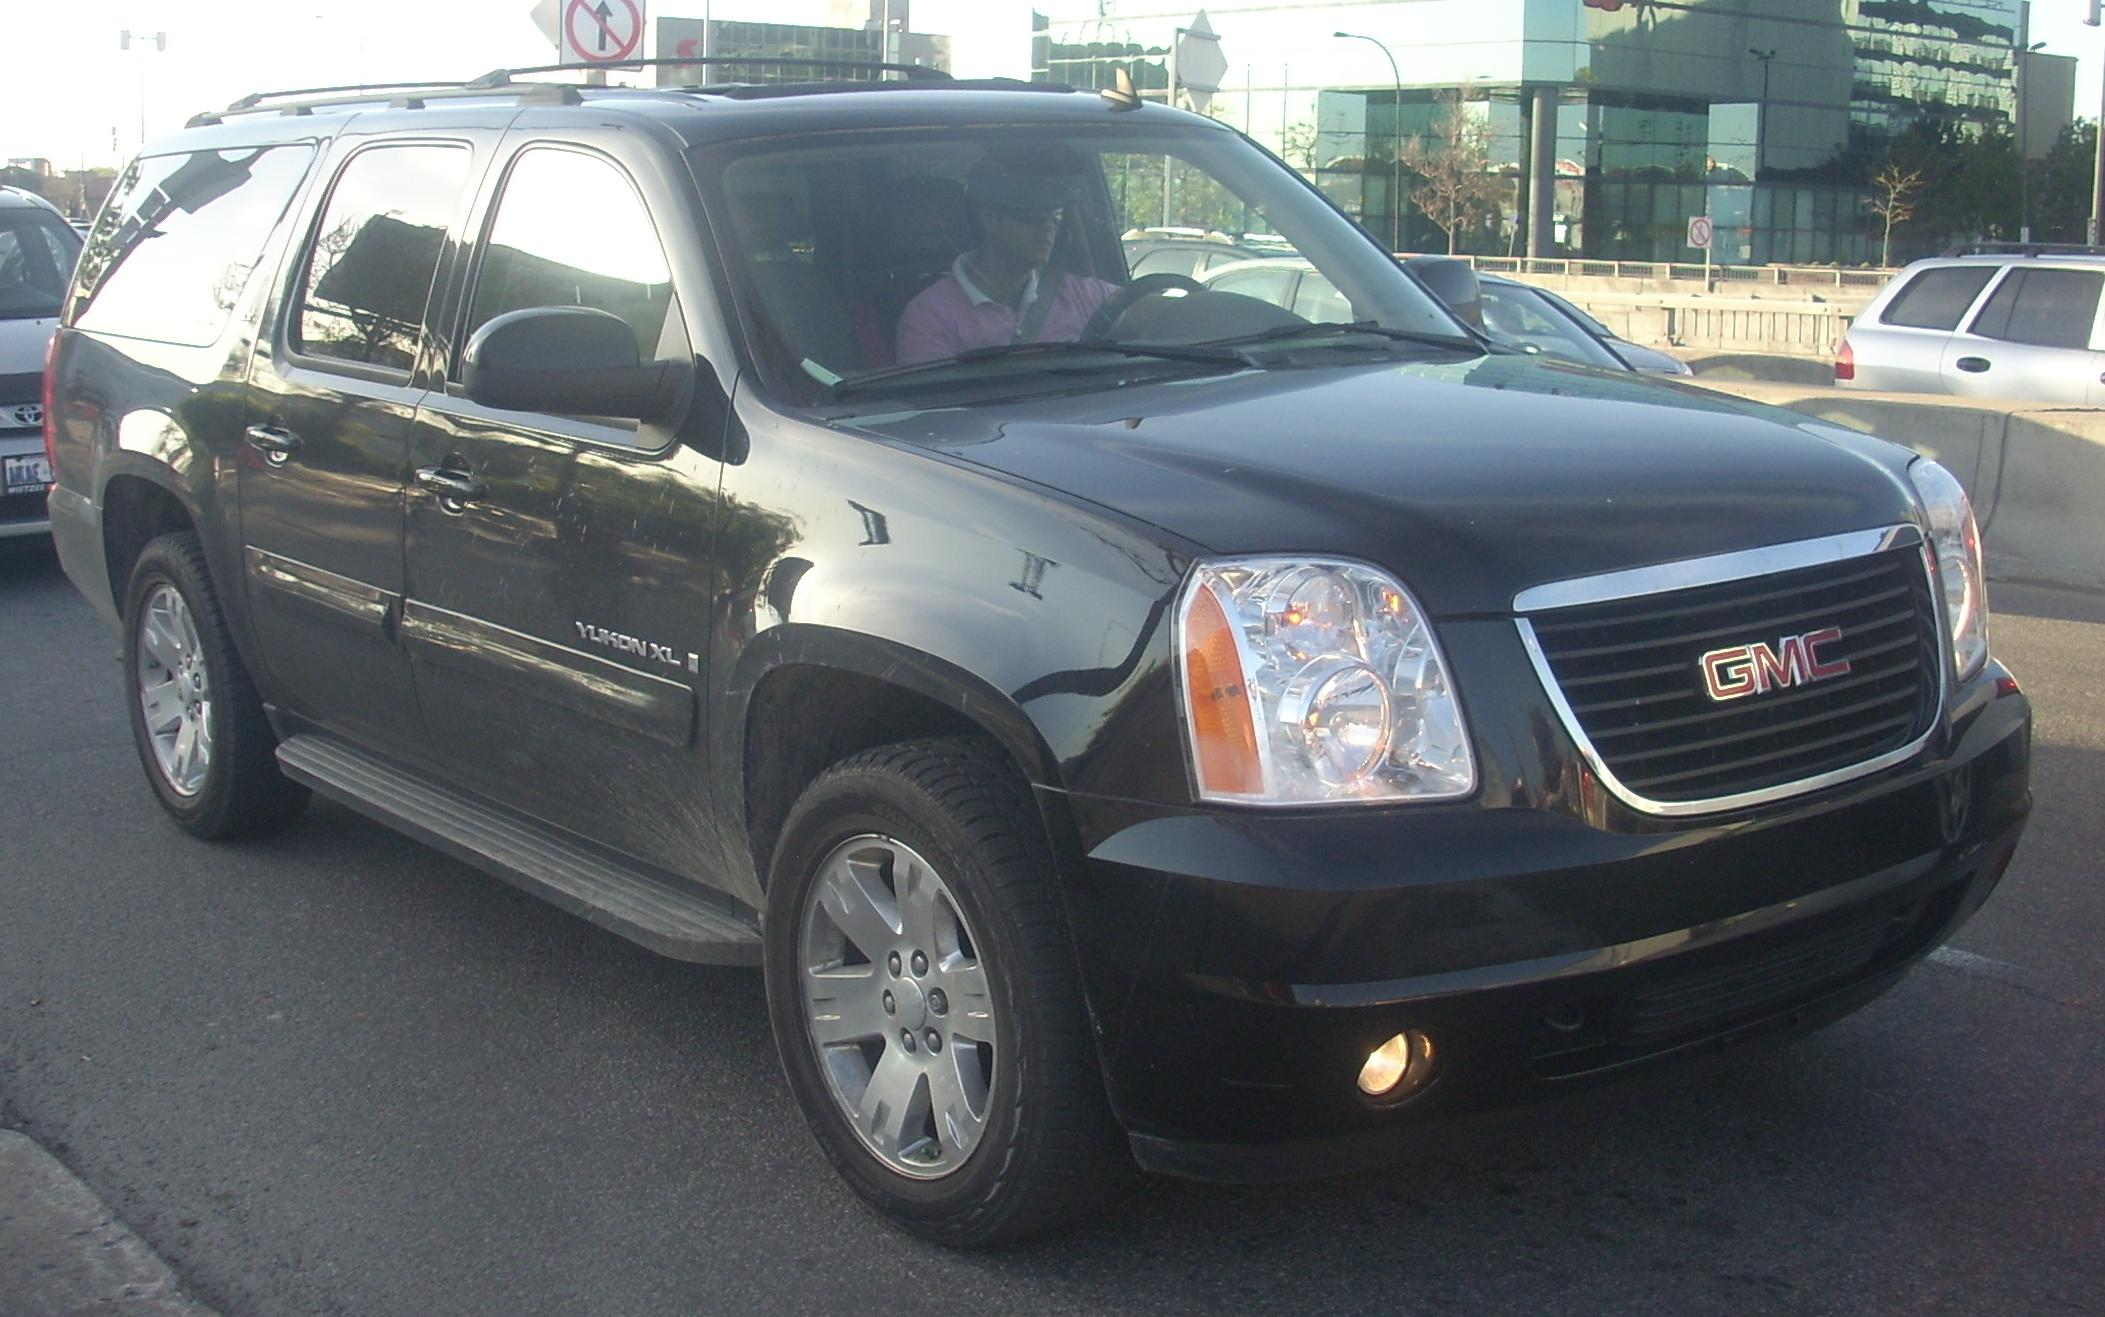 File:'07-'10 GMC Yukon XL SLT.jpg - Wikimedia Commons